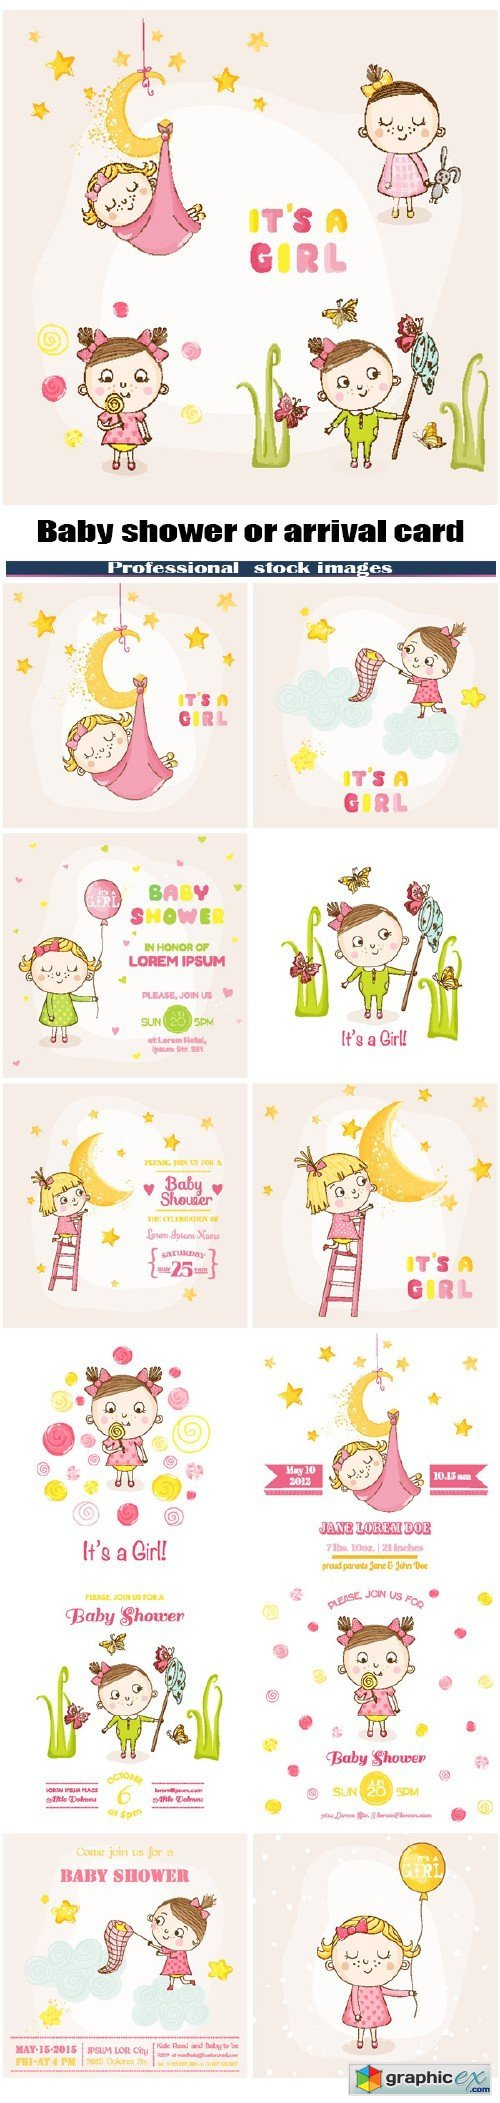 Baby shower or arrival card - Baby girl